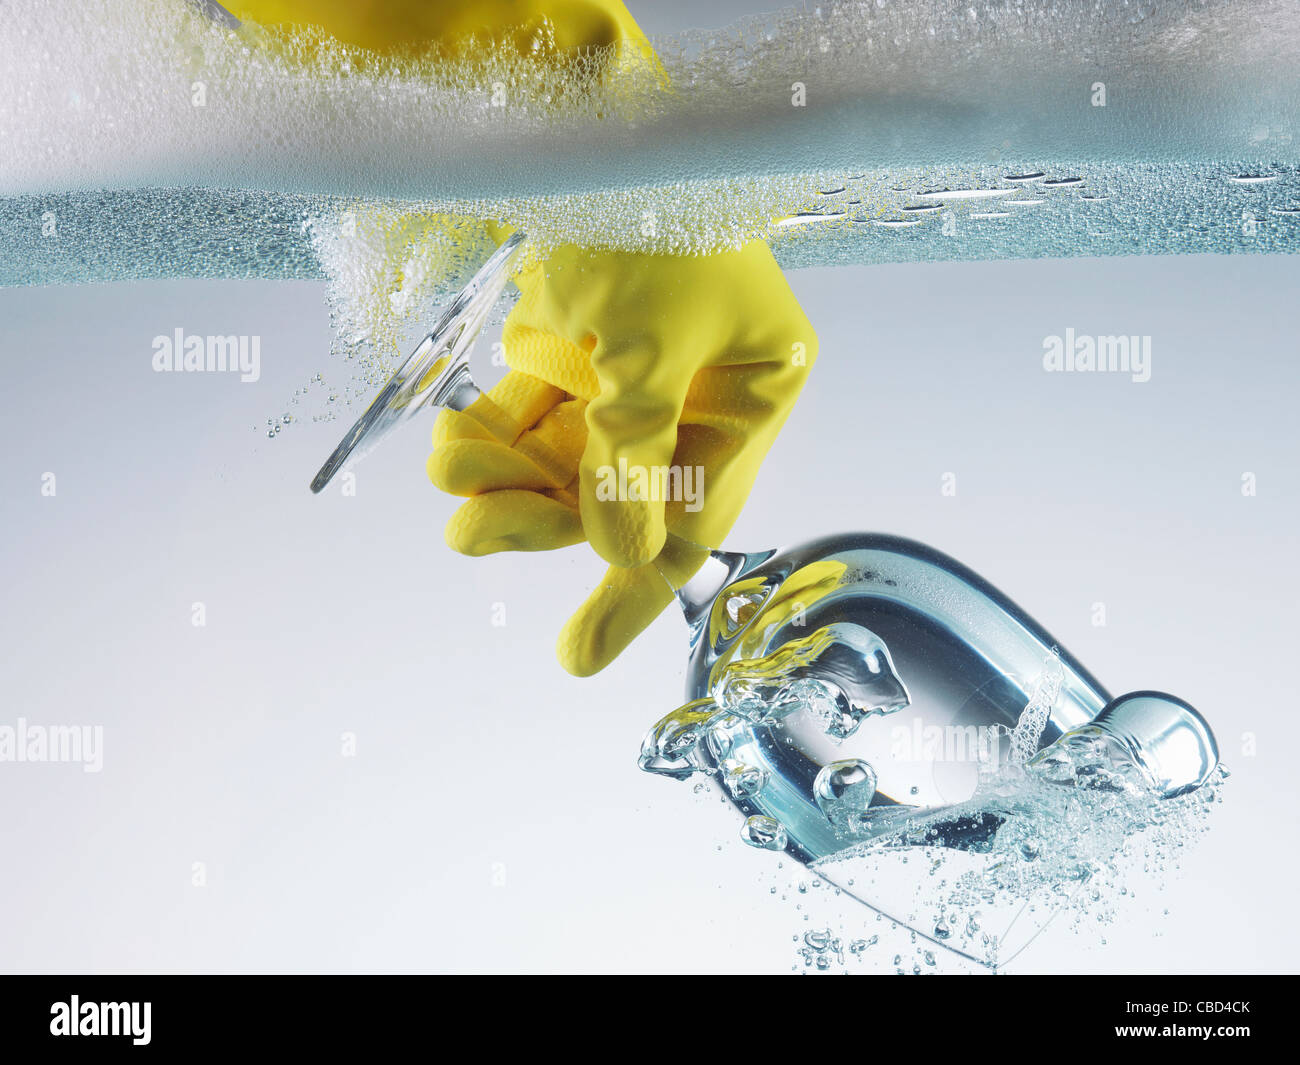 Rubber glove dunking wine glass in water - Stock Image